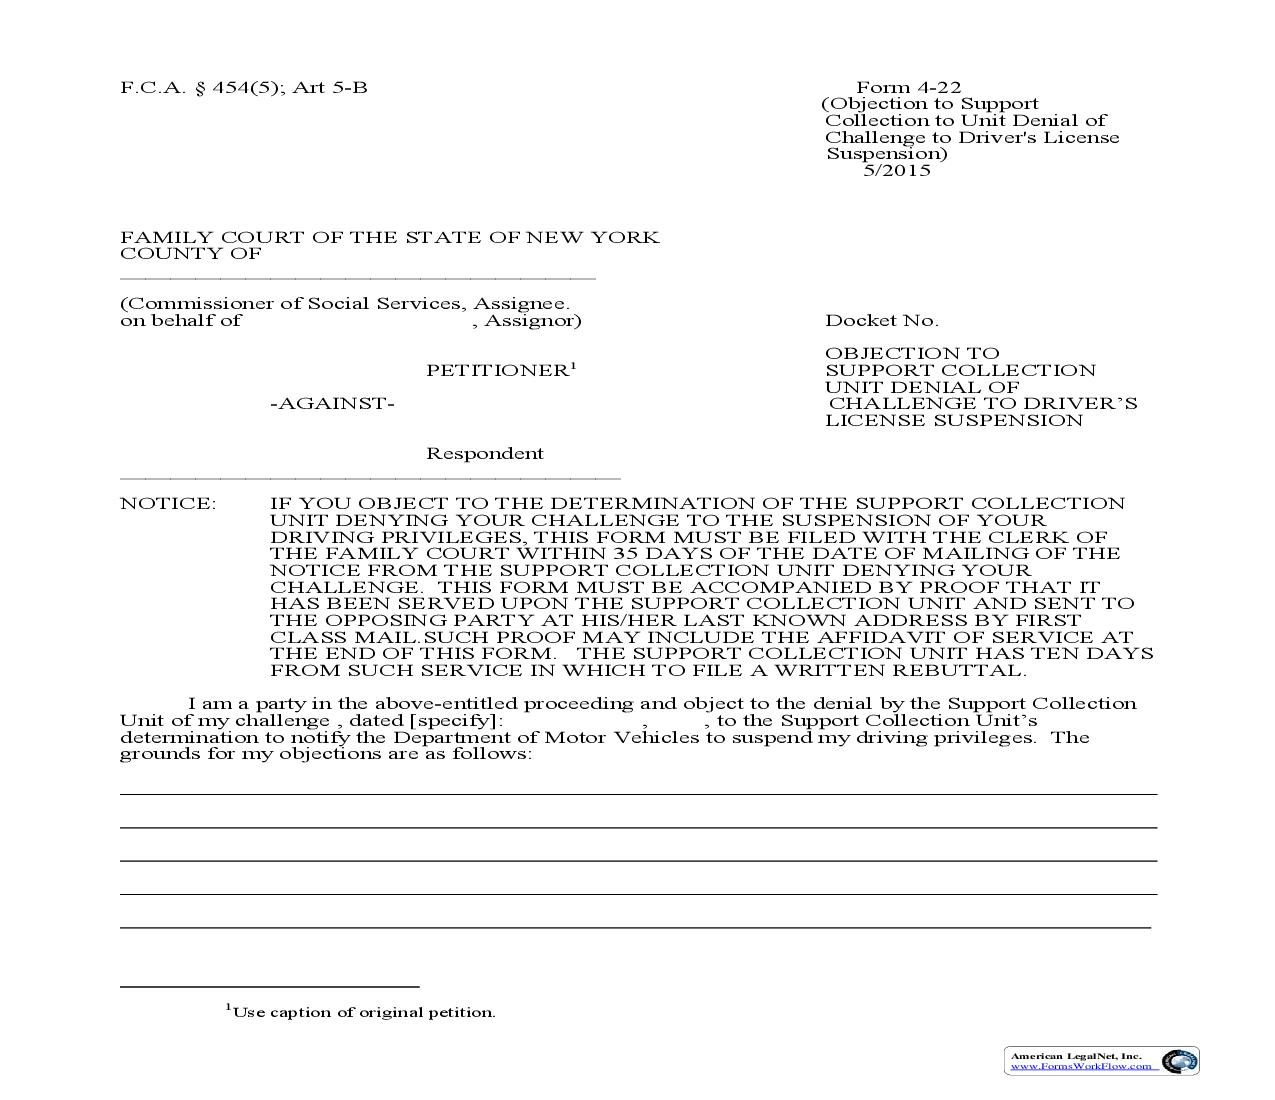 Objection To Support Collection Unit Denial Of Challenge To Drivers License Suspension {4-22}   Pdf Fpdf Doc Docx   New York